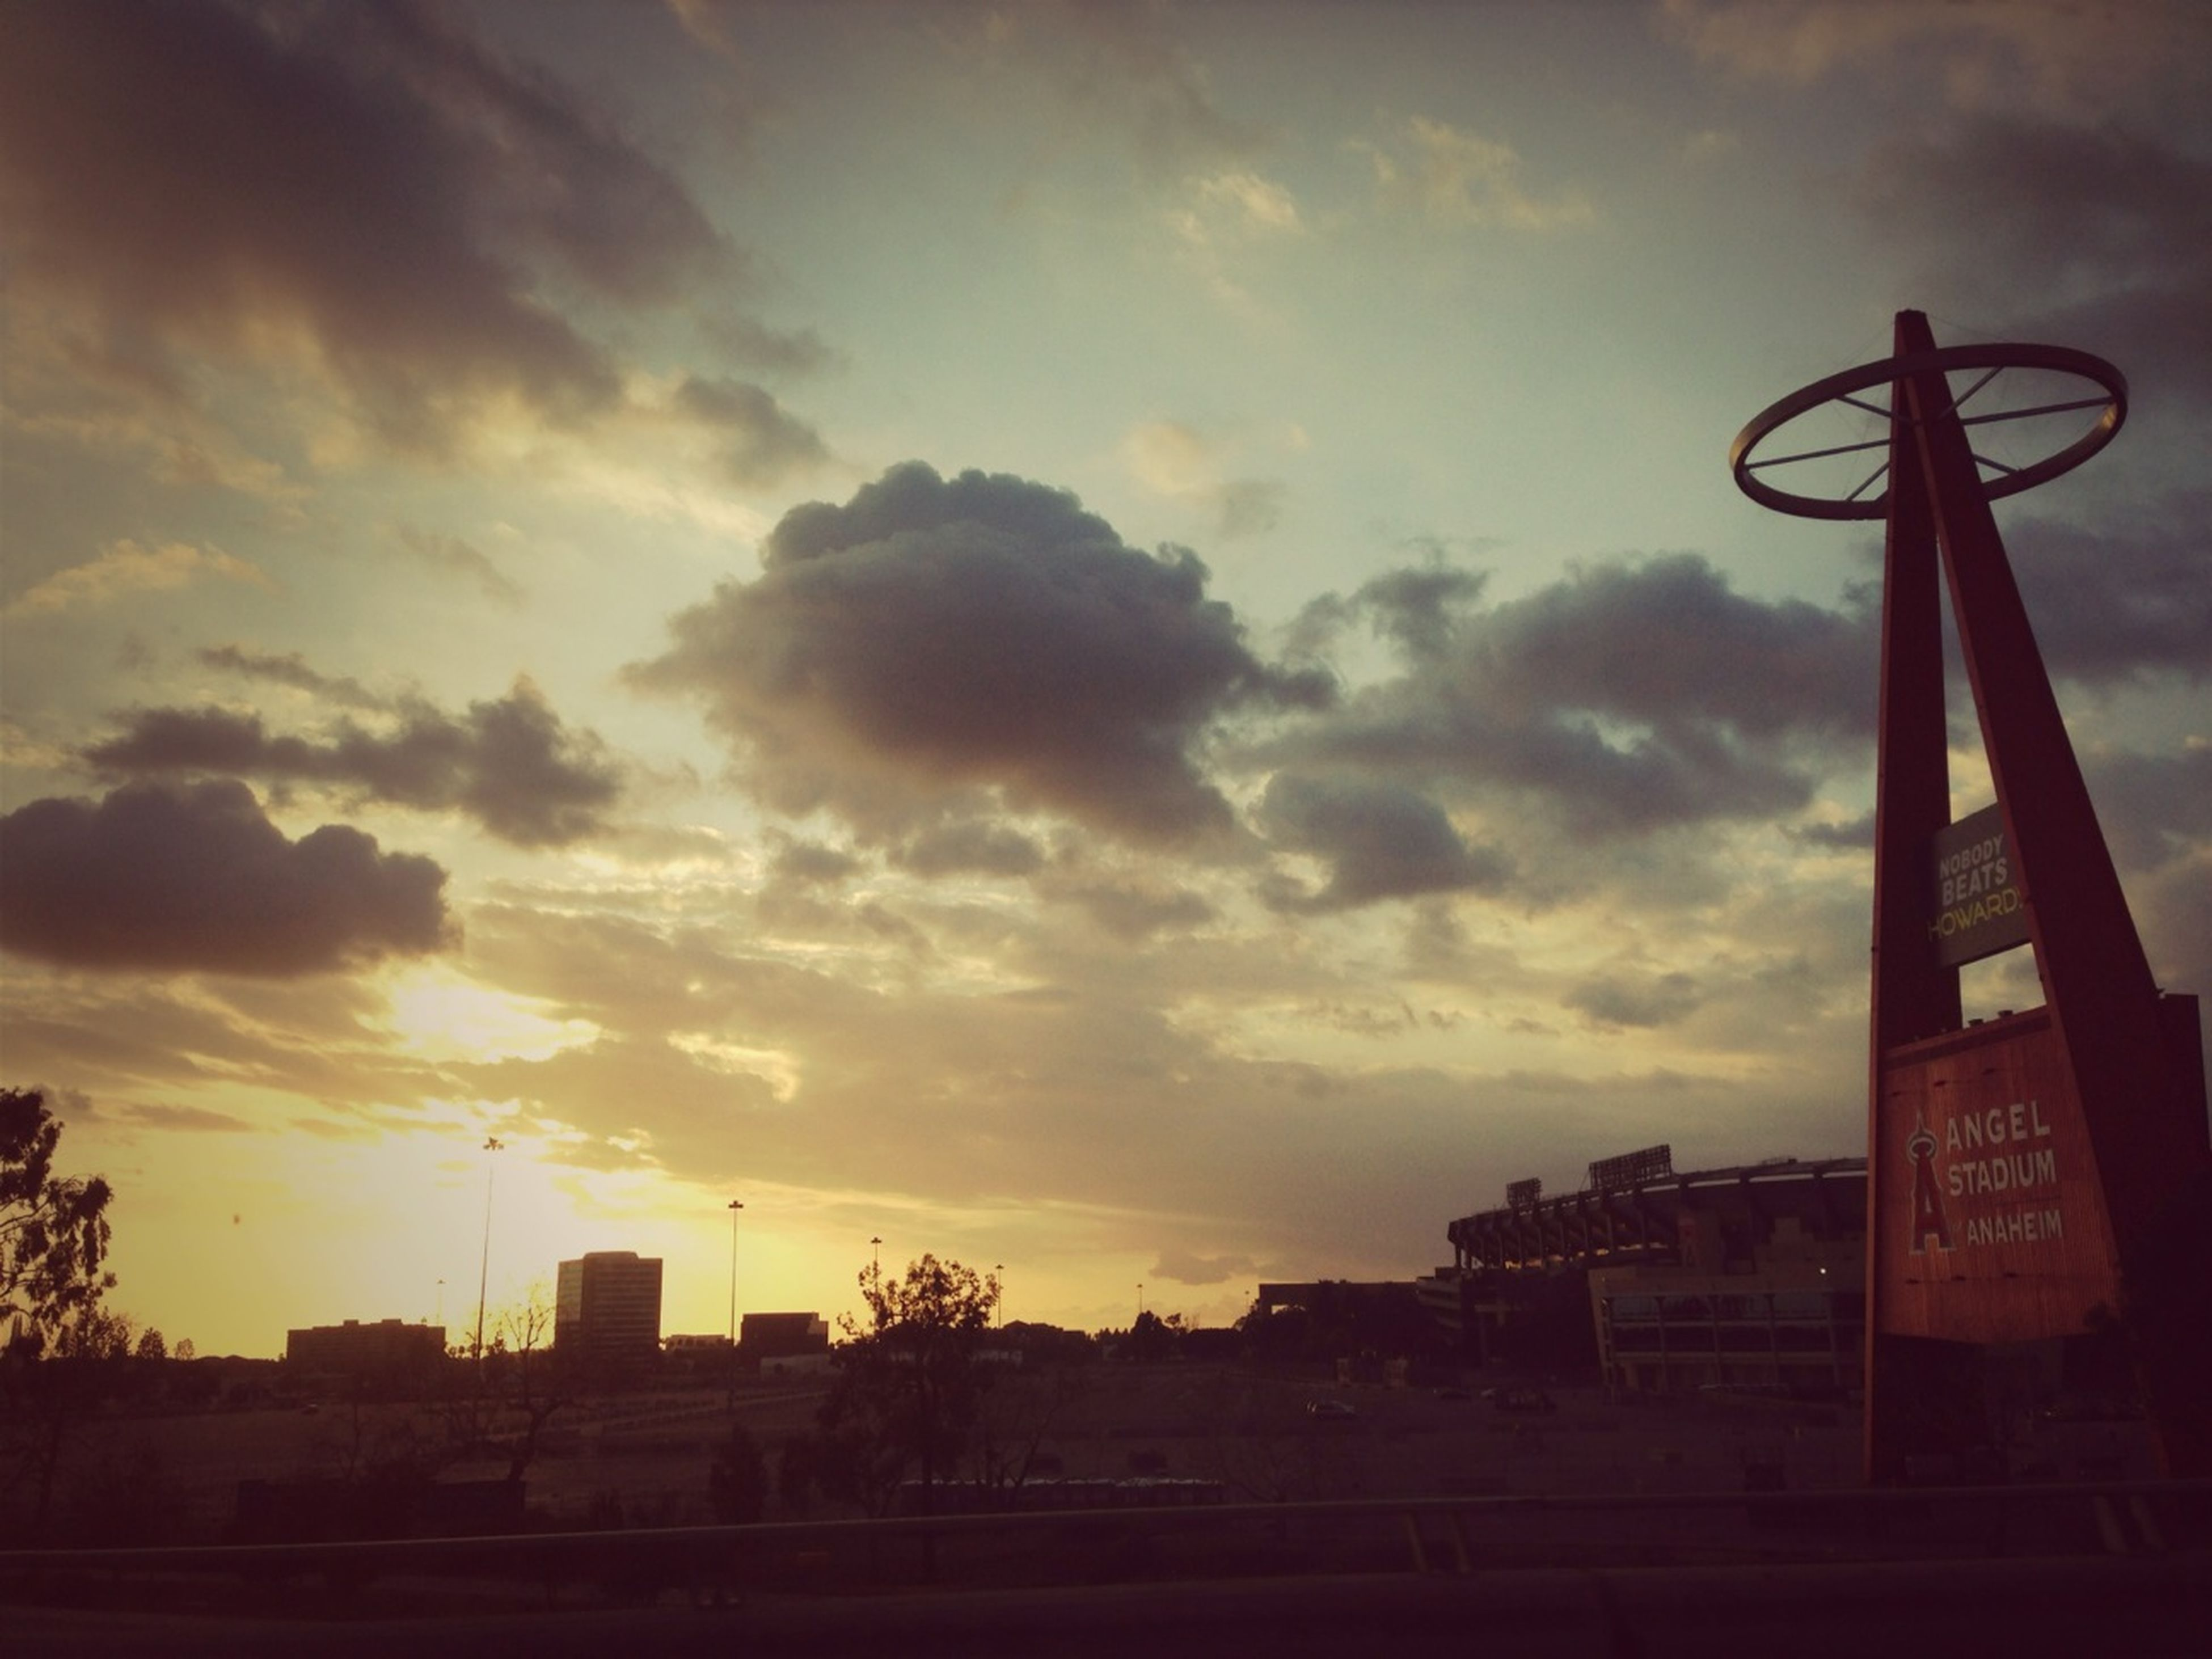 sunset, sky, architecture, built structure, cloud - sky, building exterior, silhouette, low angle view, cloudy, street light, communication, orange color, cloud, city, dusk, outdoors, no people, nature, guidance, dramatic sky